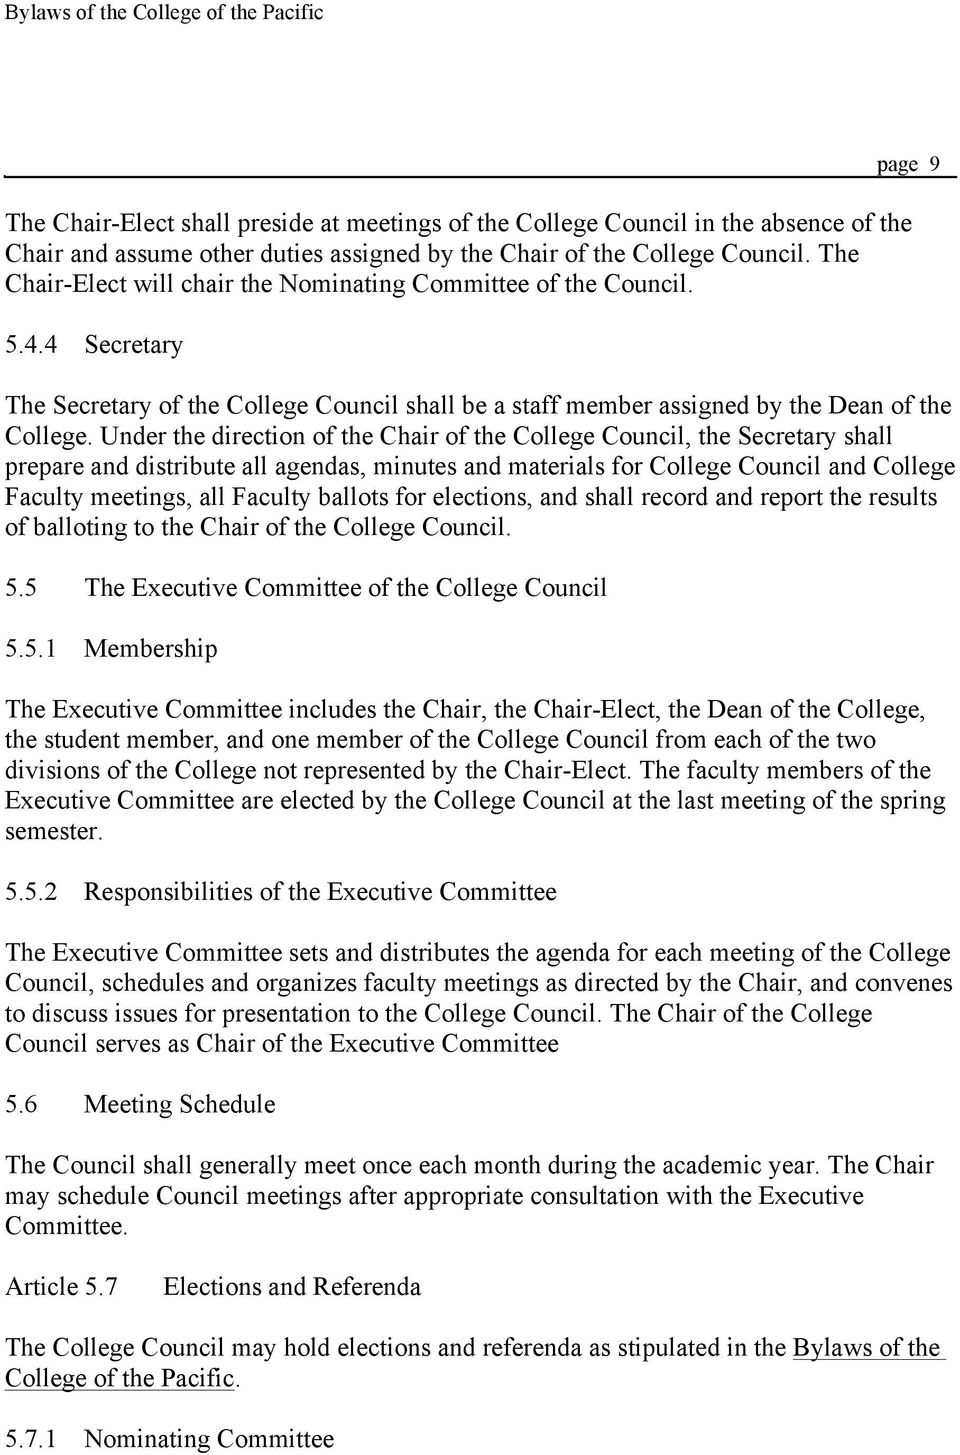 Under the direction of the Chair of the College Council, the Secretary shall prepare and distribute all agendas, minutes and materials for College Council and College Faculty meetings, all Faculty